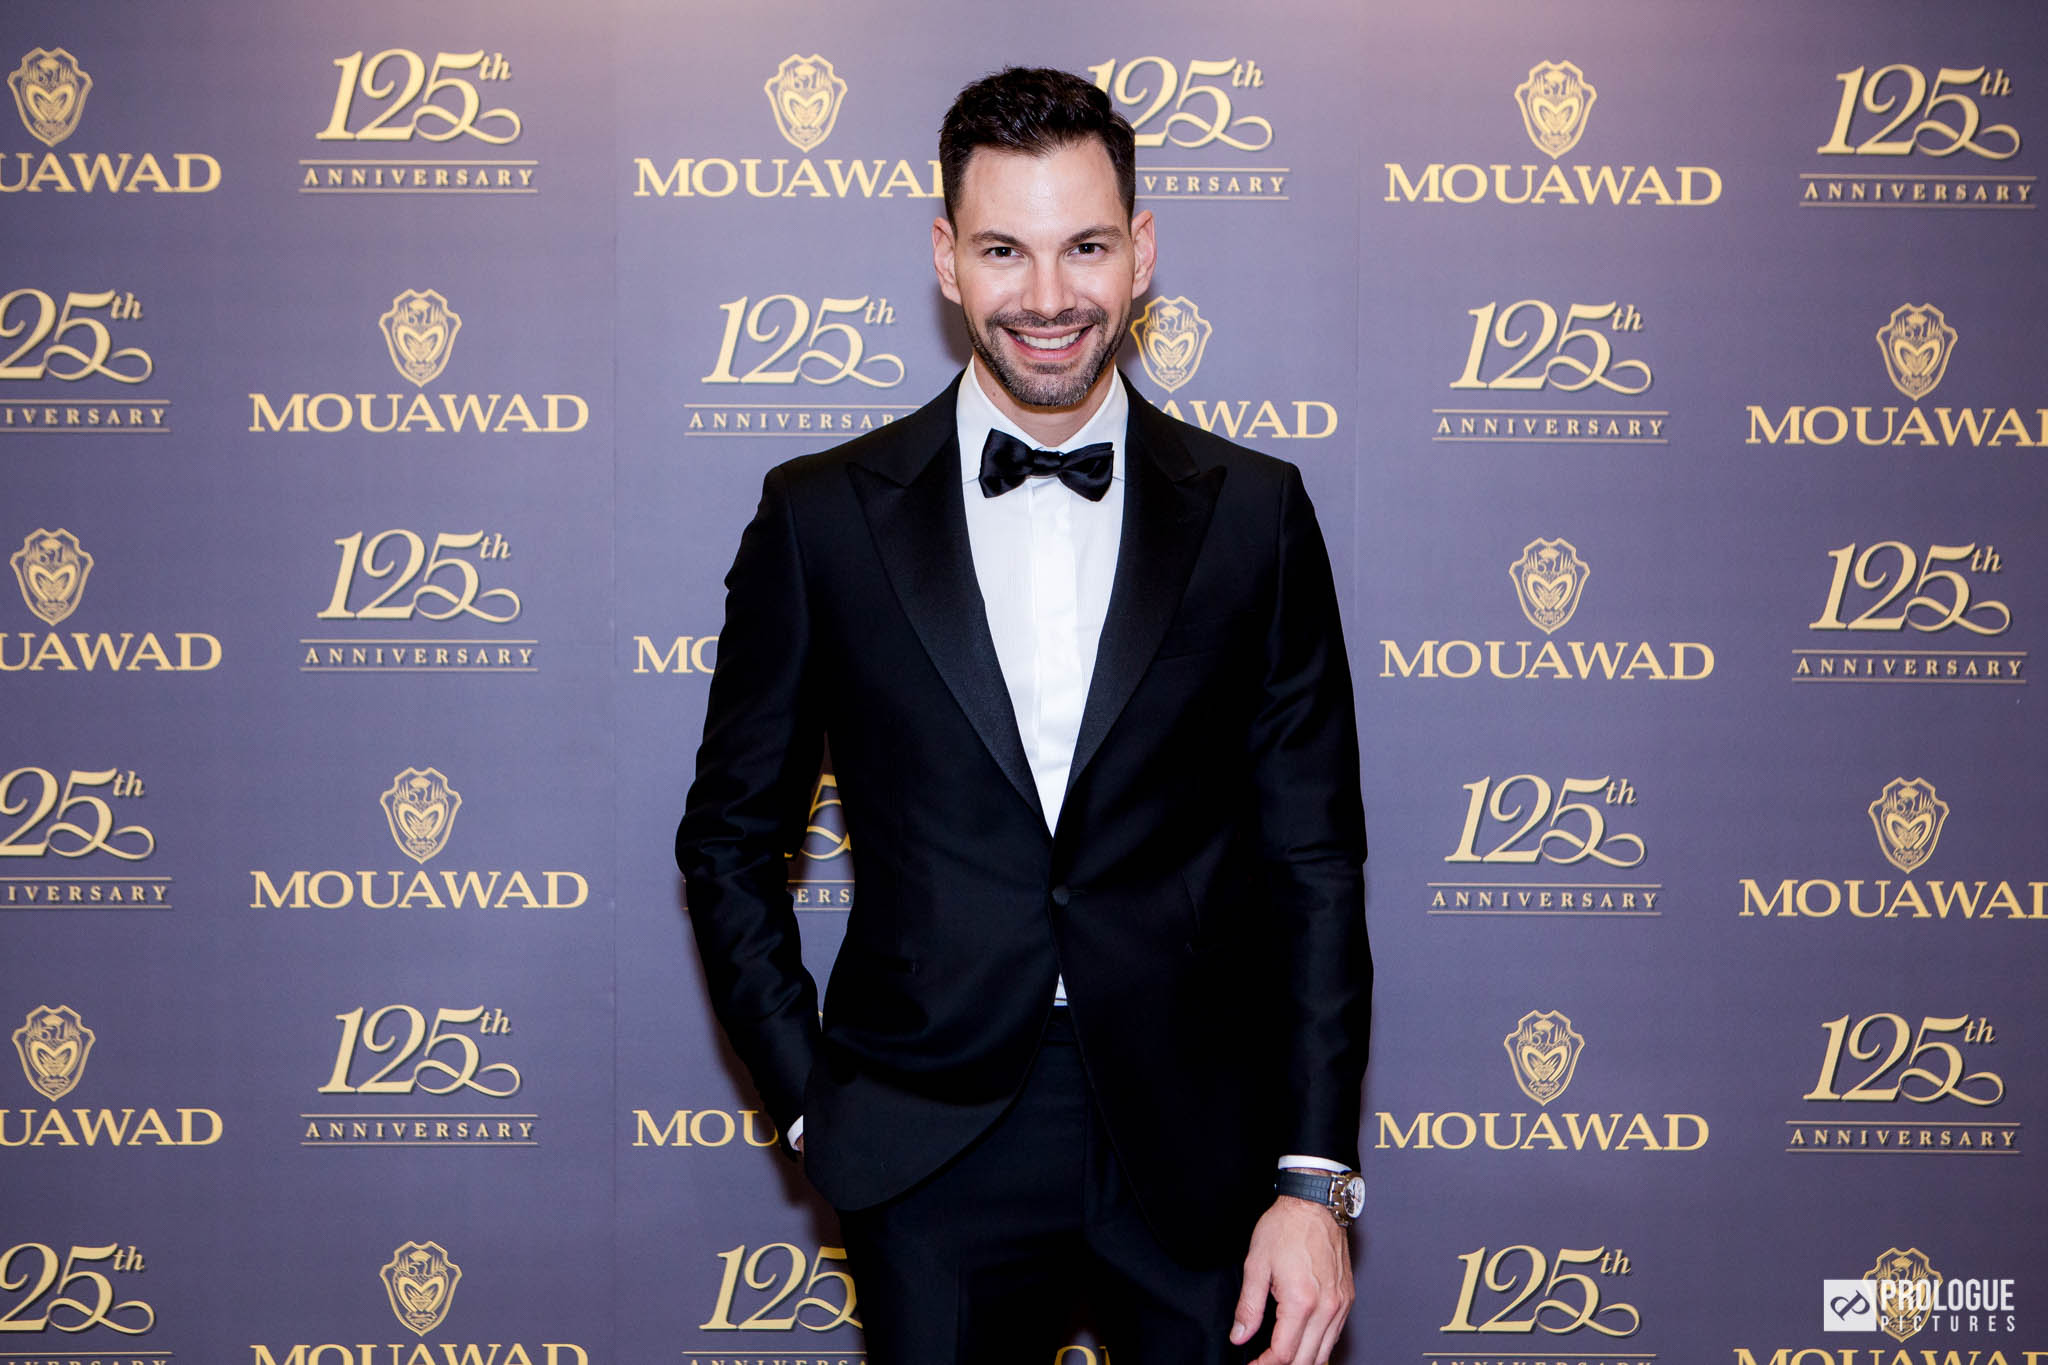 mouawad-125th-anniversary-event-photography-singapore-prologue-pictures-09